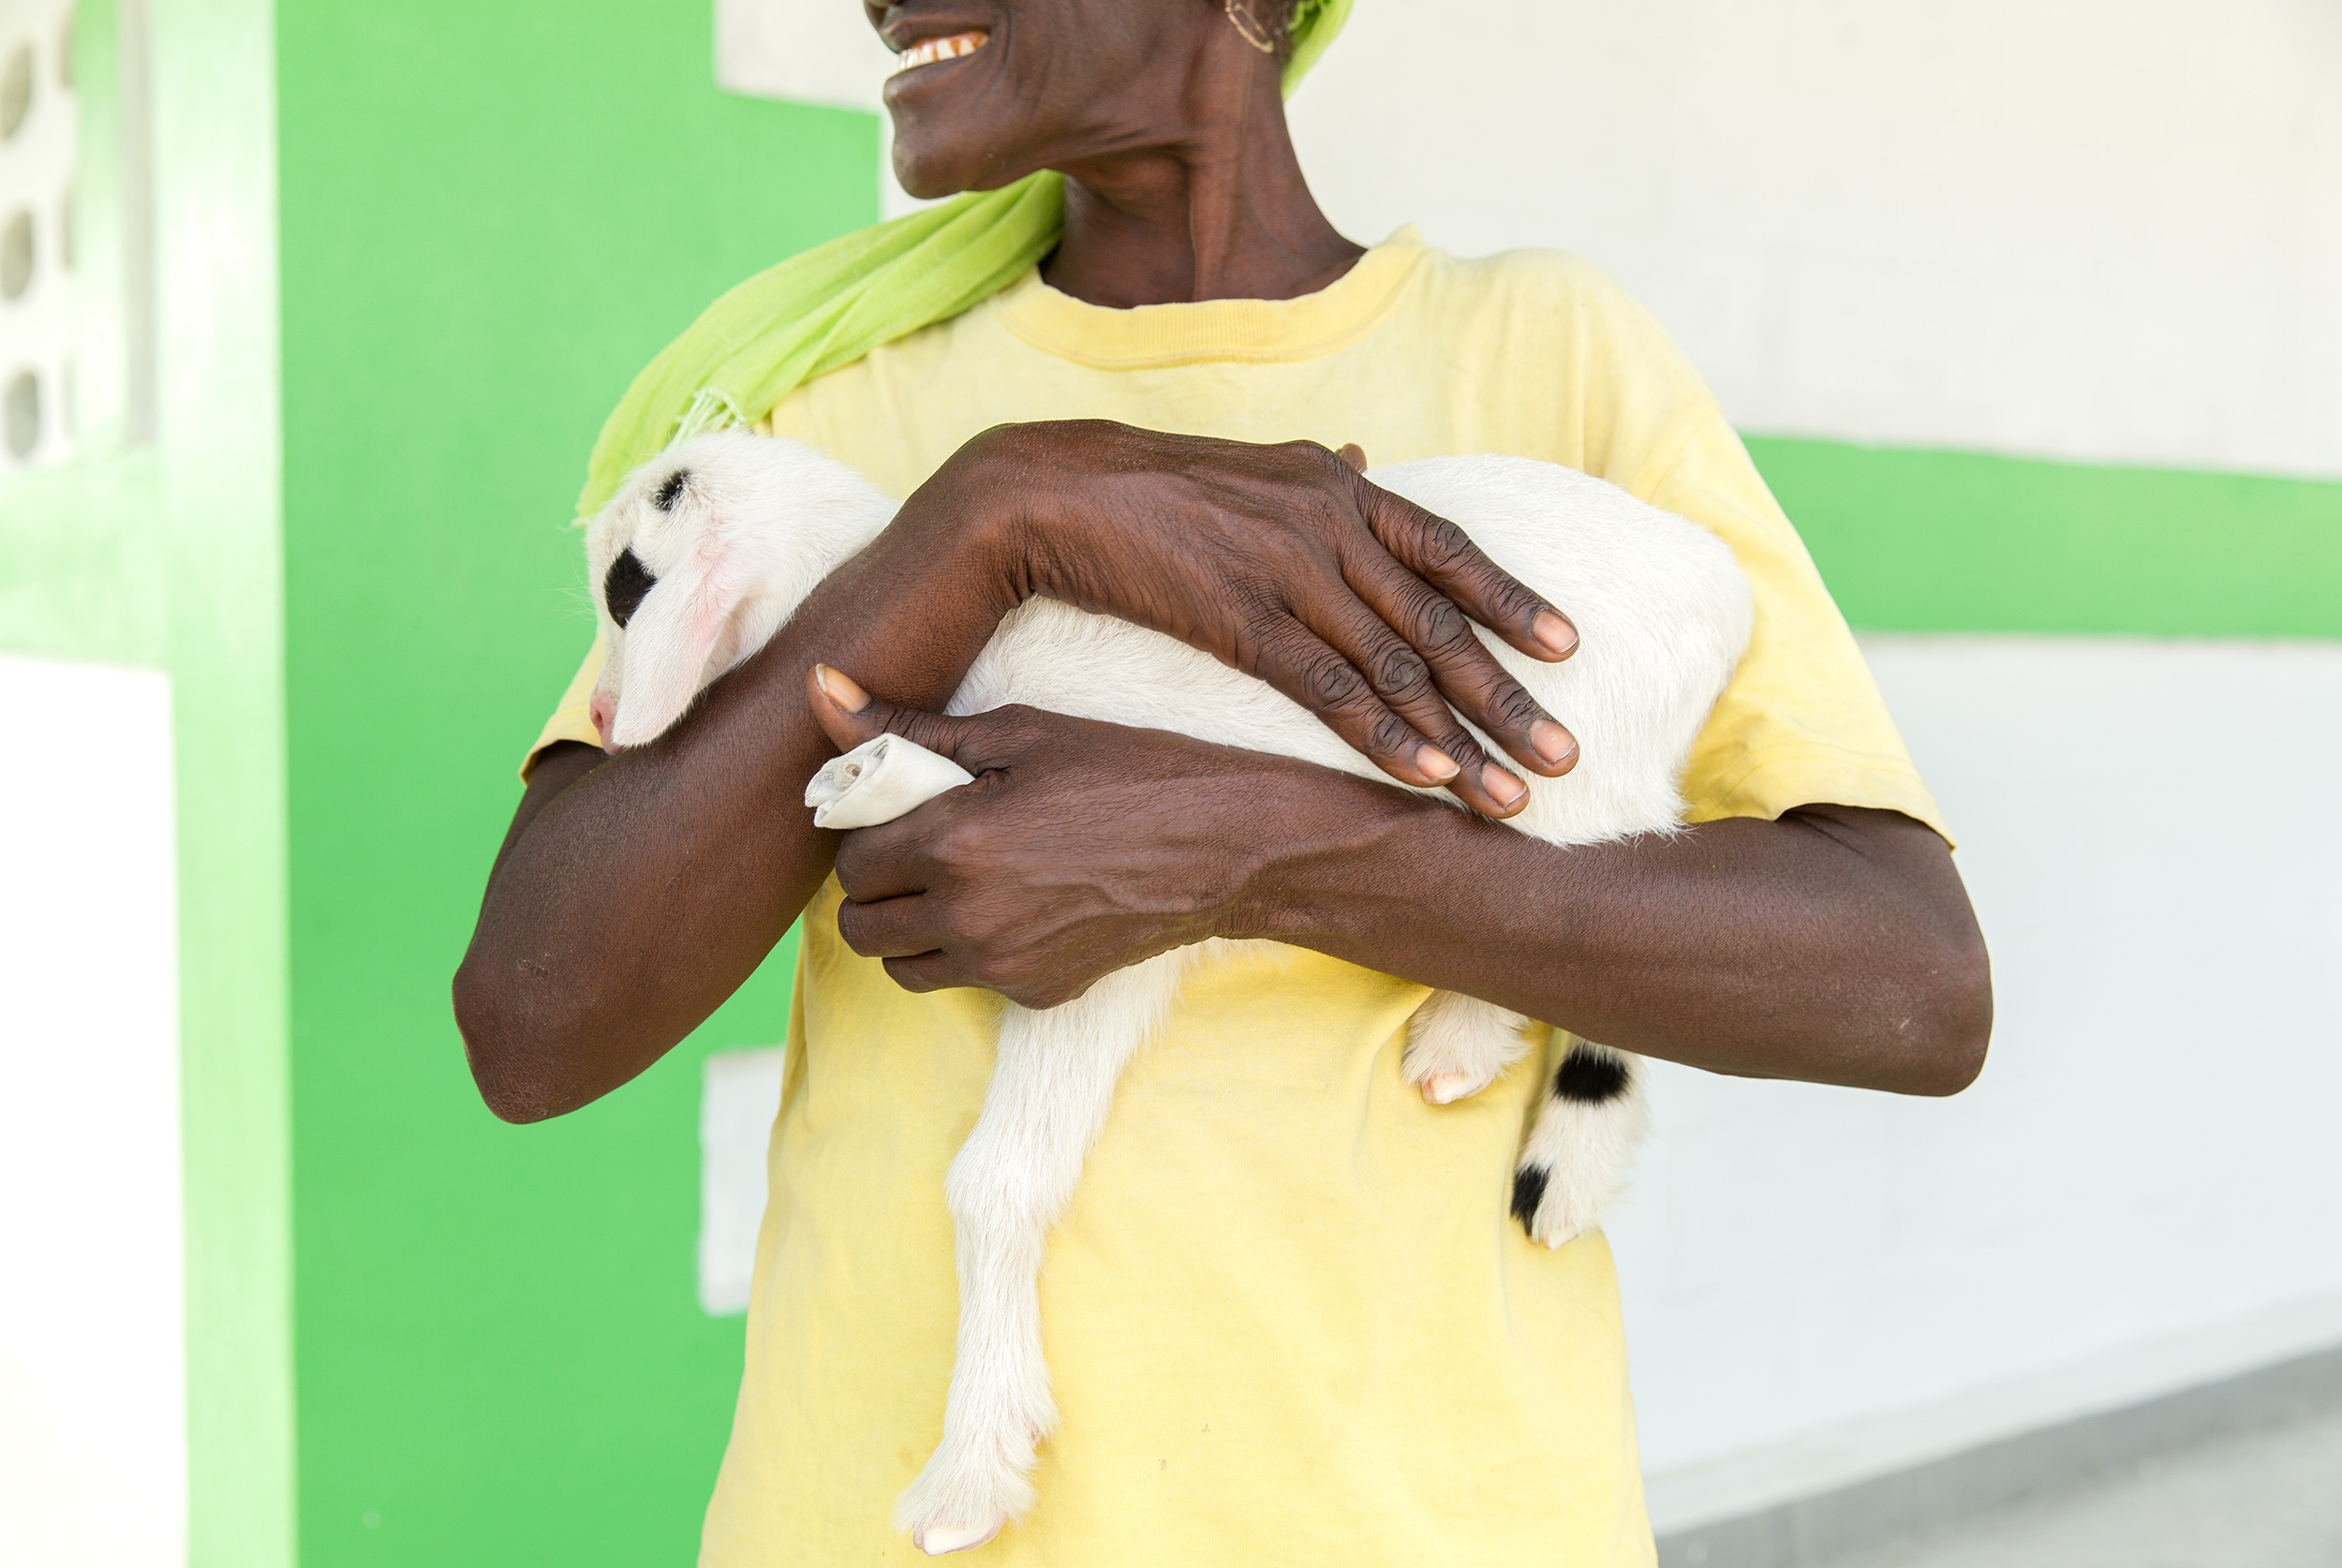 TRAVEL_HAITI_goat_babygoat_ngo_country_womenempoweringwomen_3386_WB2